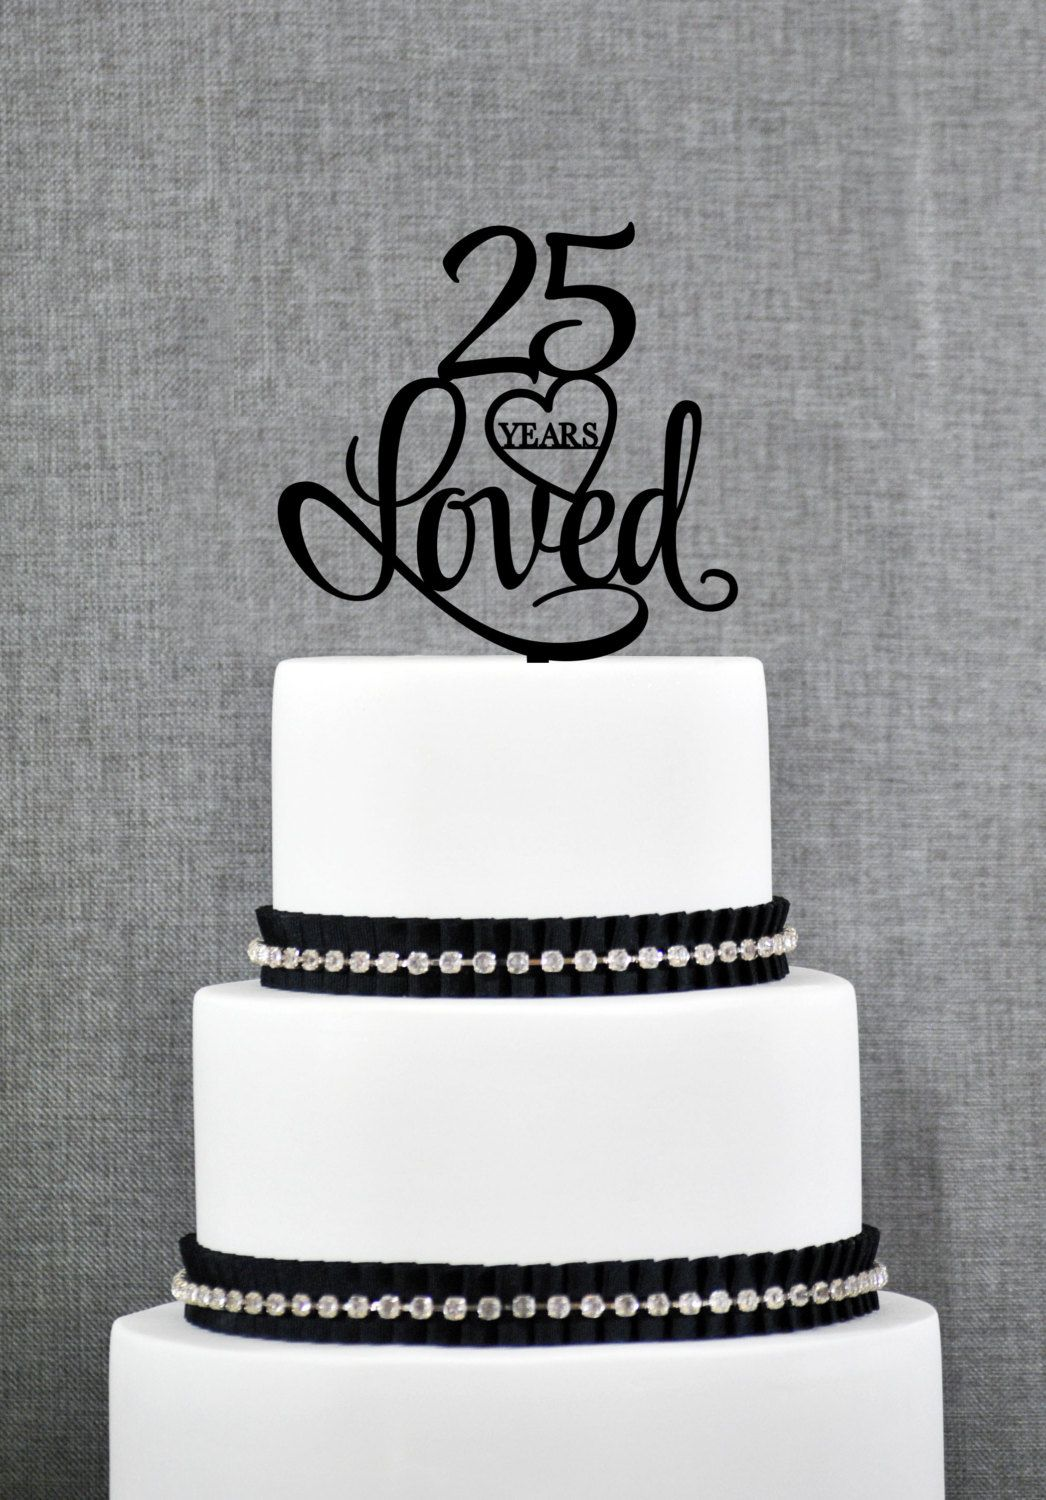 New To ChicagoFactory On Etsy 25 Years Loved Cake Topper Classy 25th Birthday Anniversary S244 1500 USD